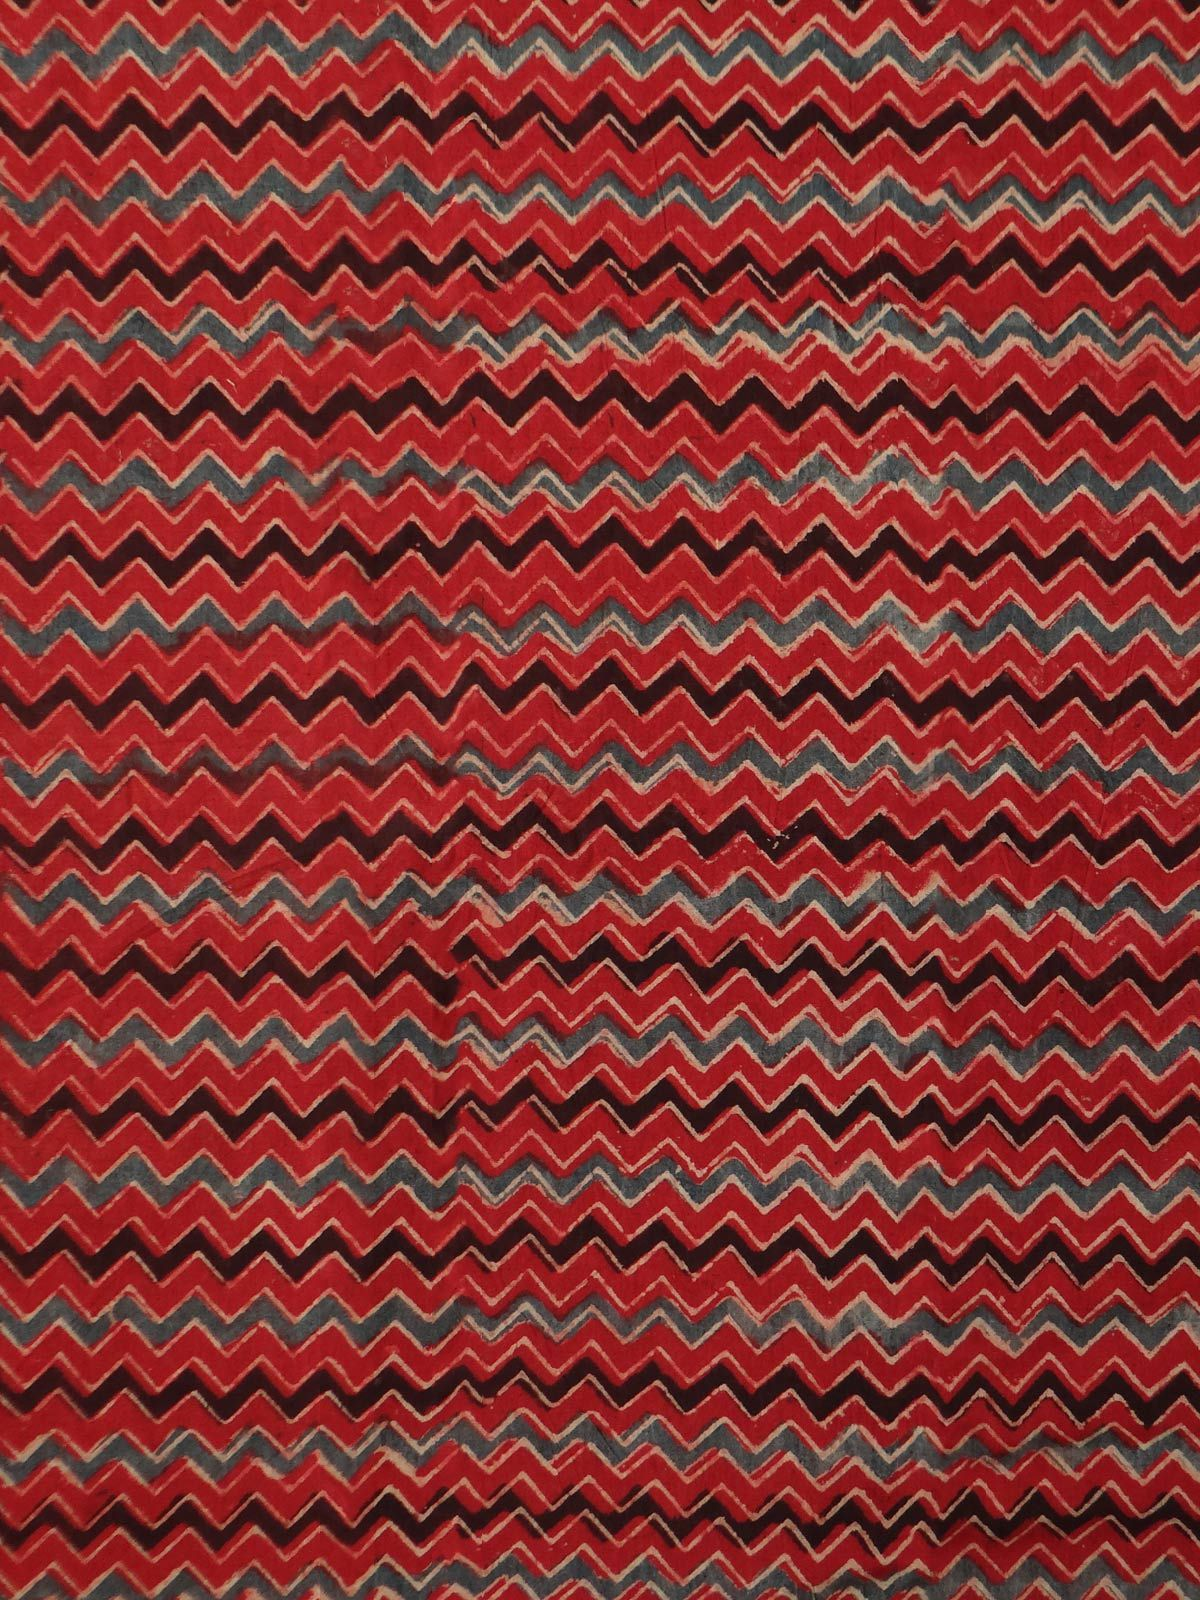 RED AJRAK  FABRIC WITH BLACK AND GREY STRIPES